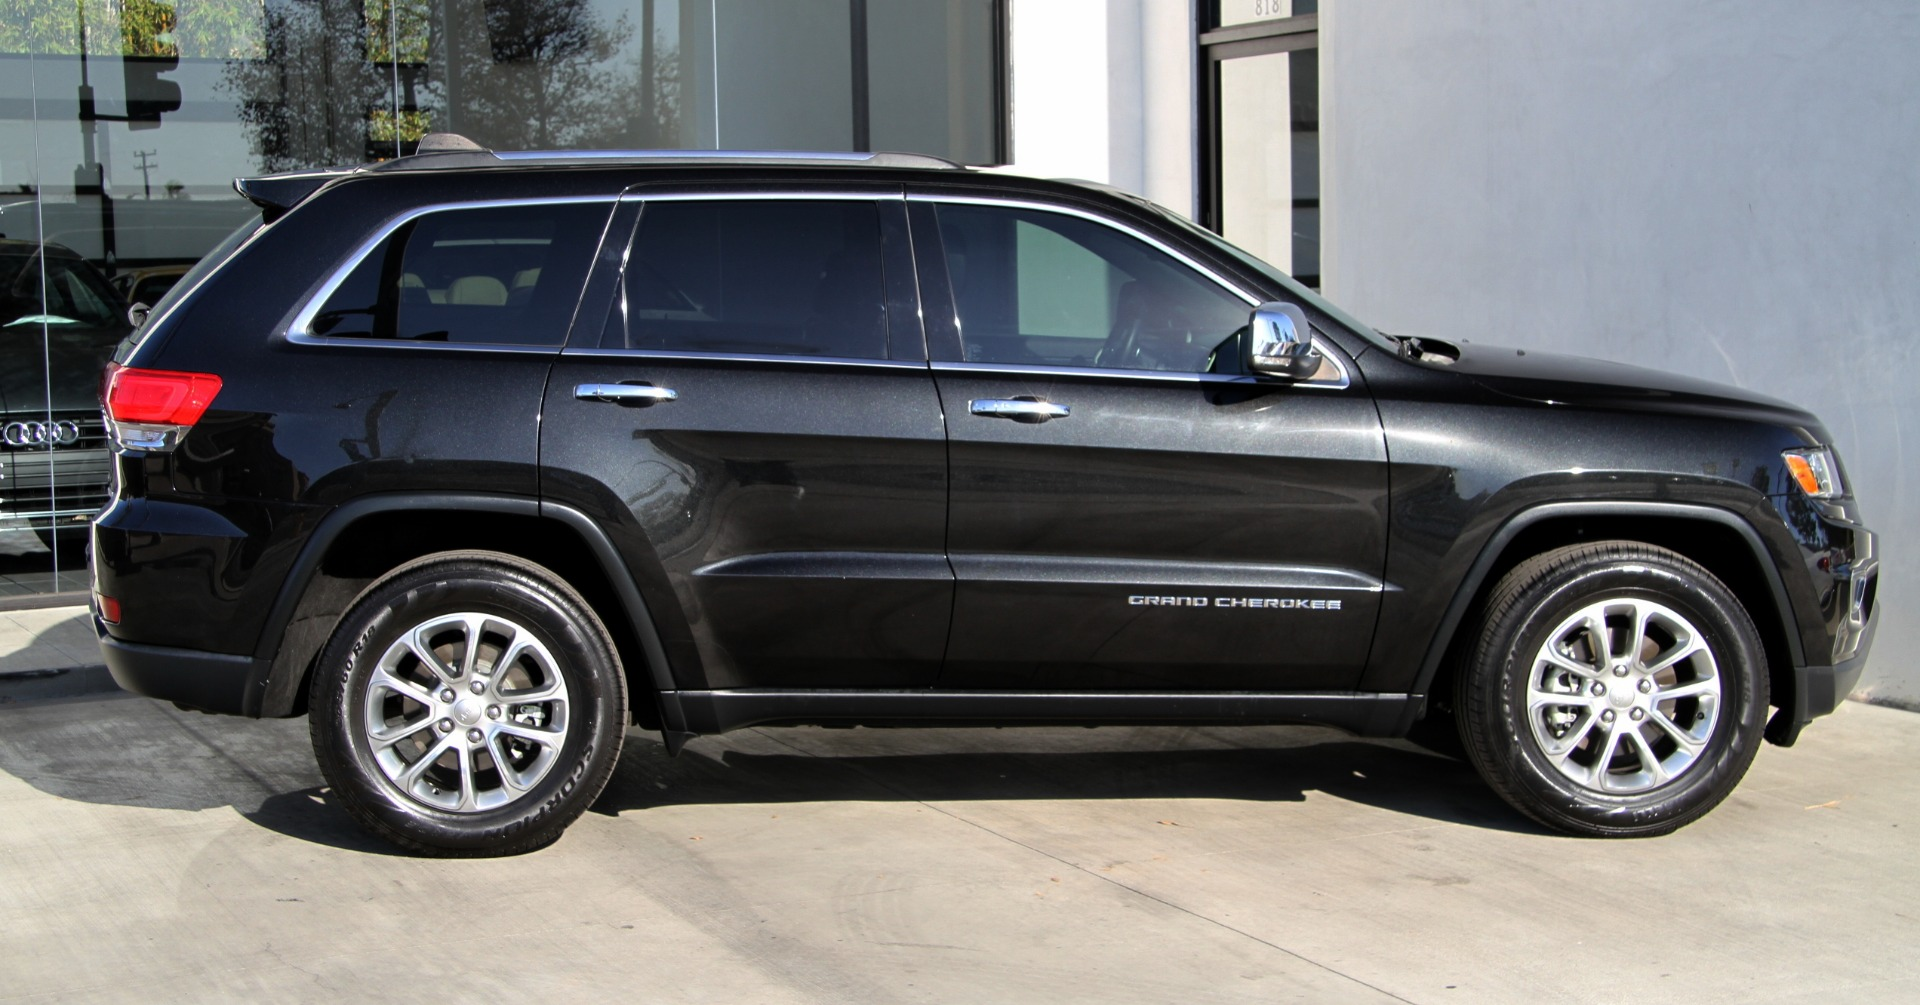 Jeep Dealer Near Me >> 2014 Jeep Grand Cherokee Limited Stock # 6010B for sale ...